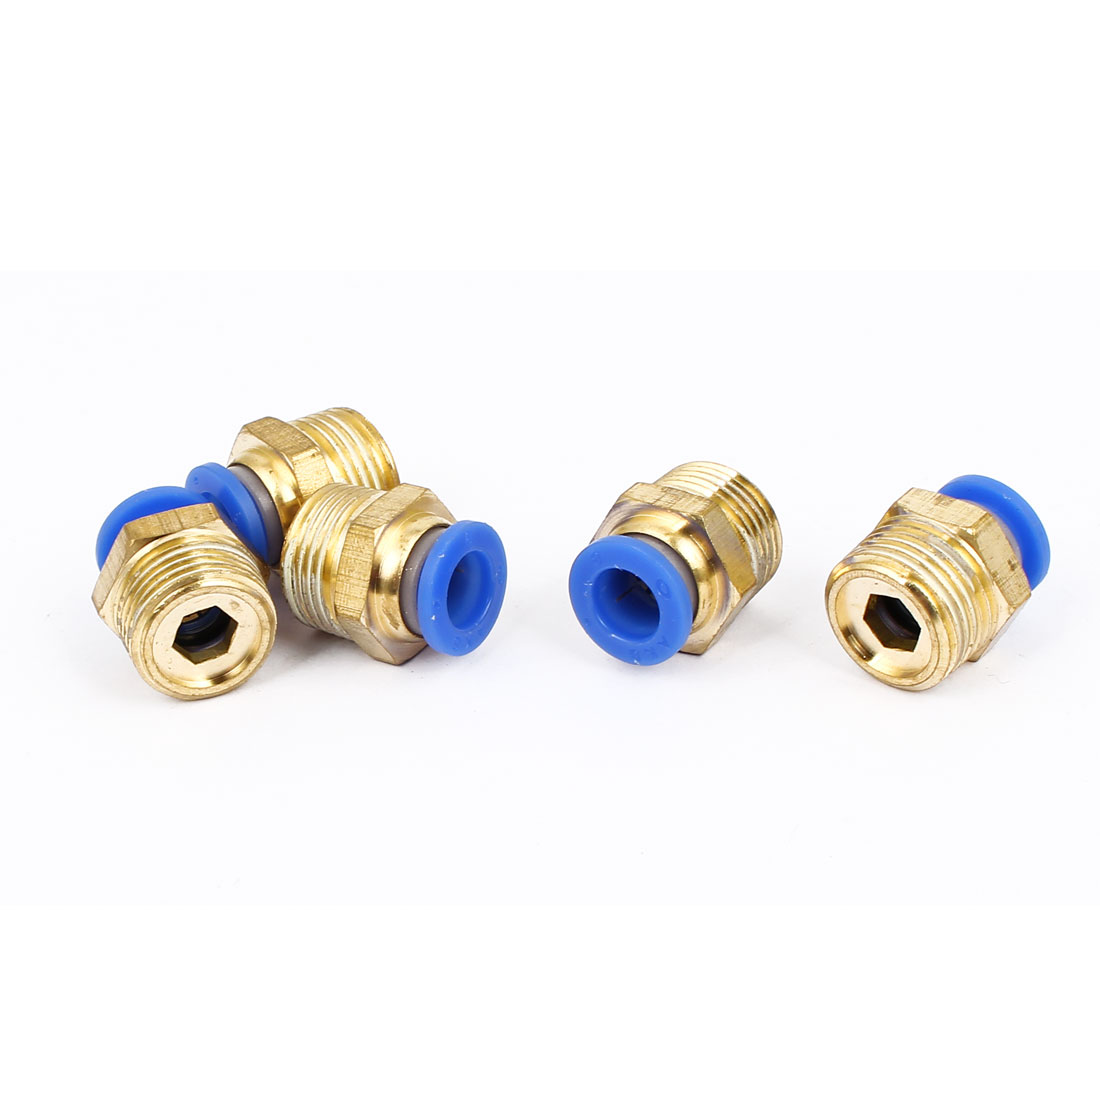 Tube OD 8mm x 3/8BSP Push In Quick Release Air Fitting Connector 5pcs